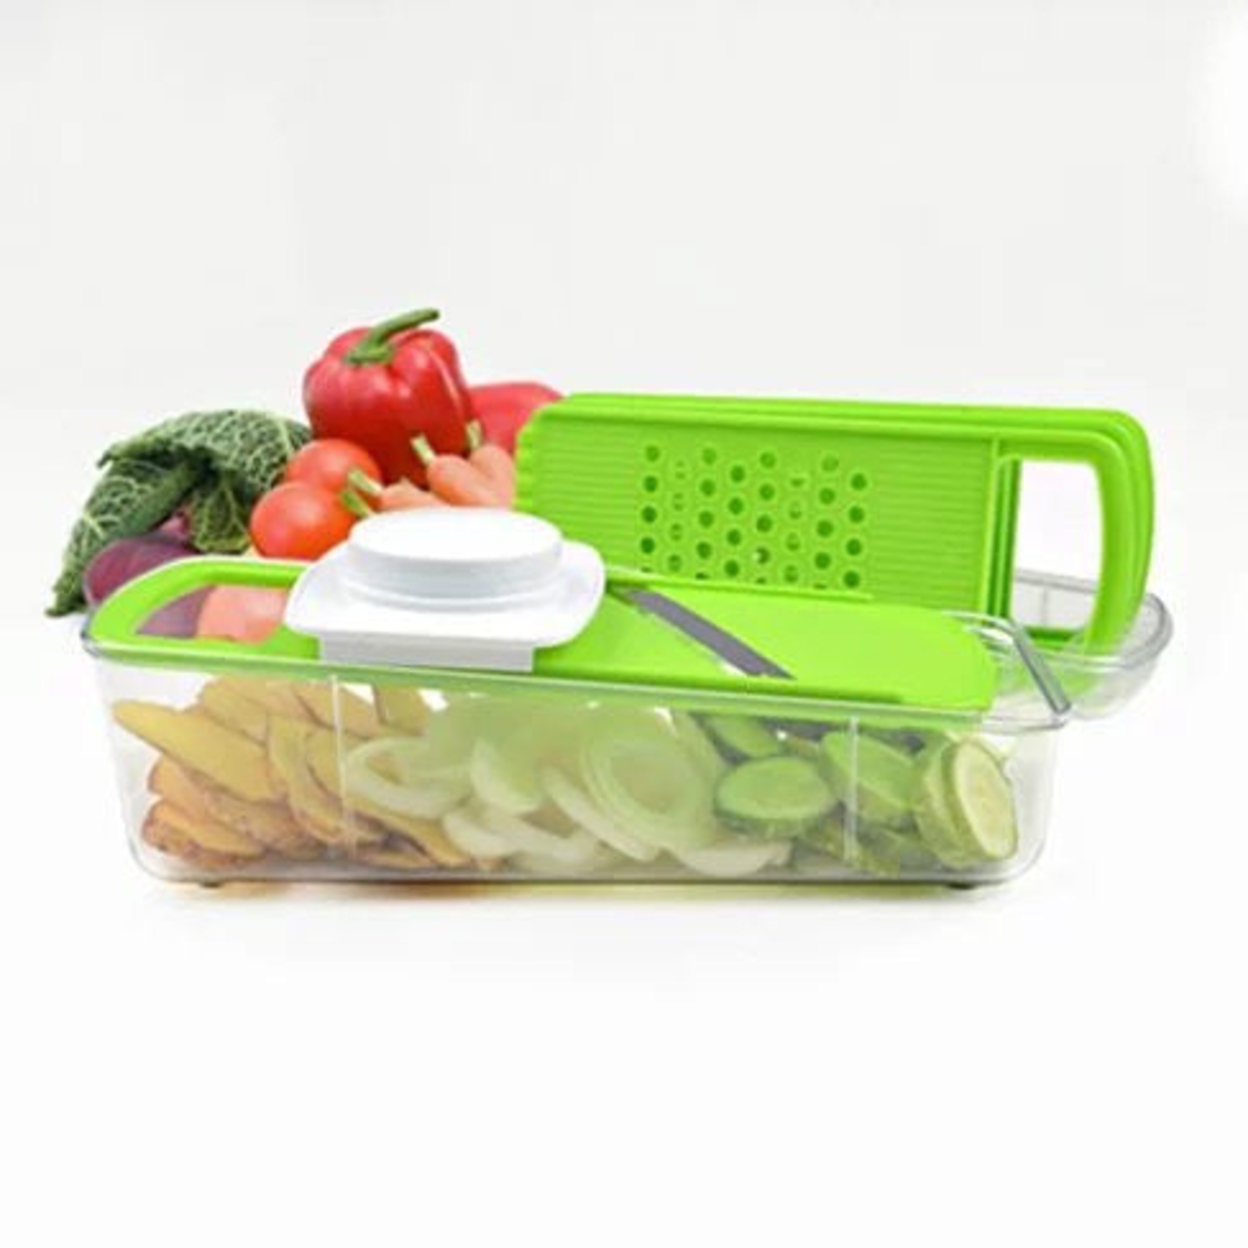 Go Green Veggie 4 in 1 Grinder Slicer Cutter And Shredder 56fc29546d3d6f1c298b48ba